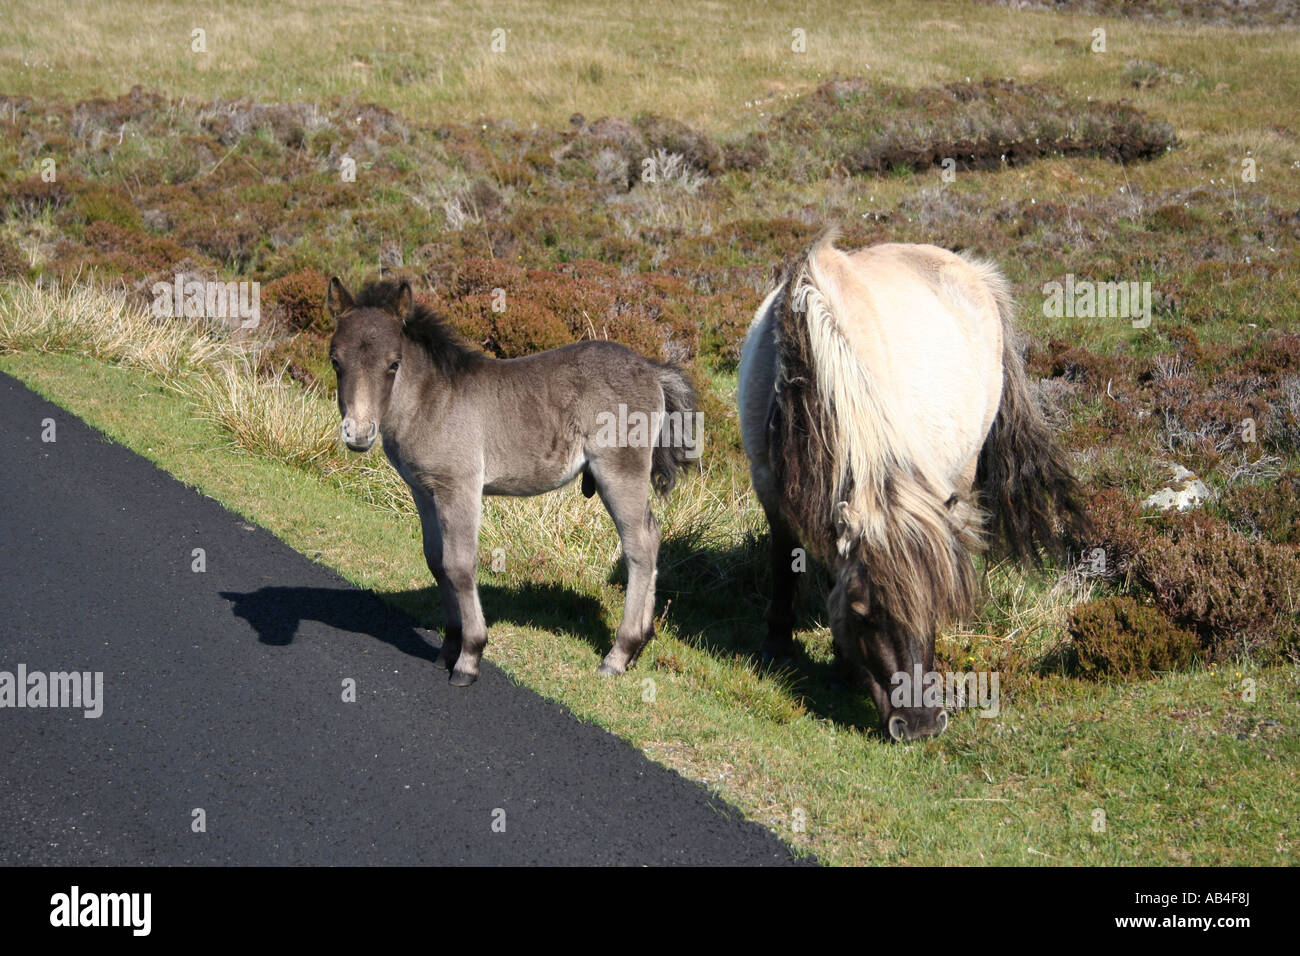 Eriskay pony and foal beside road Loch Druidibeg Nature reserve South Uist Outer Hebrides Scotland  June 2007 - Stock Image